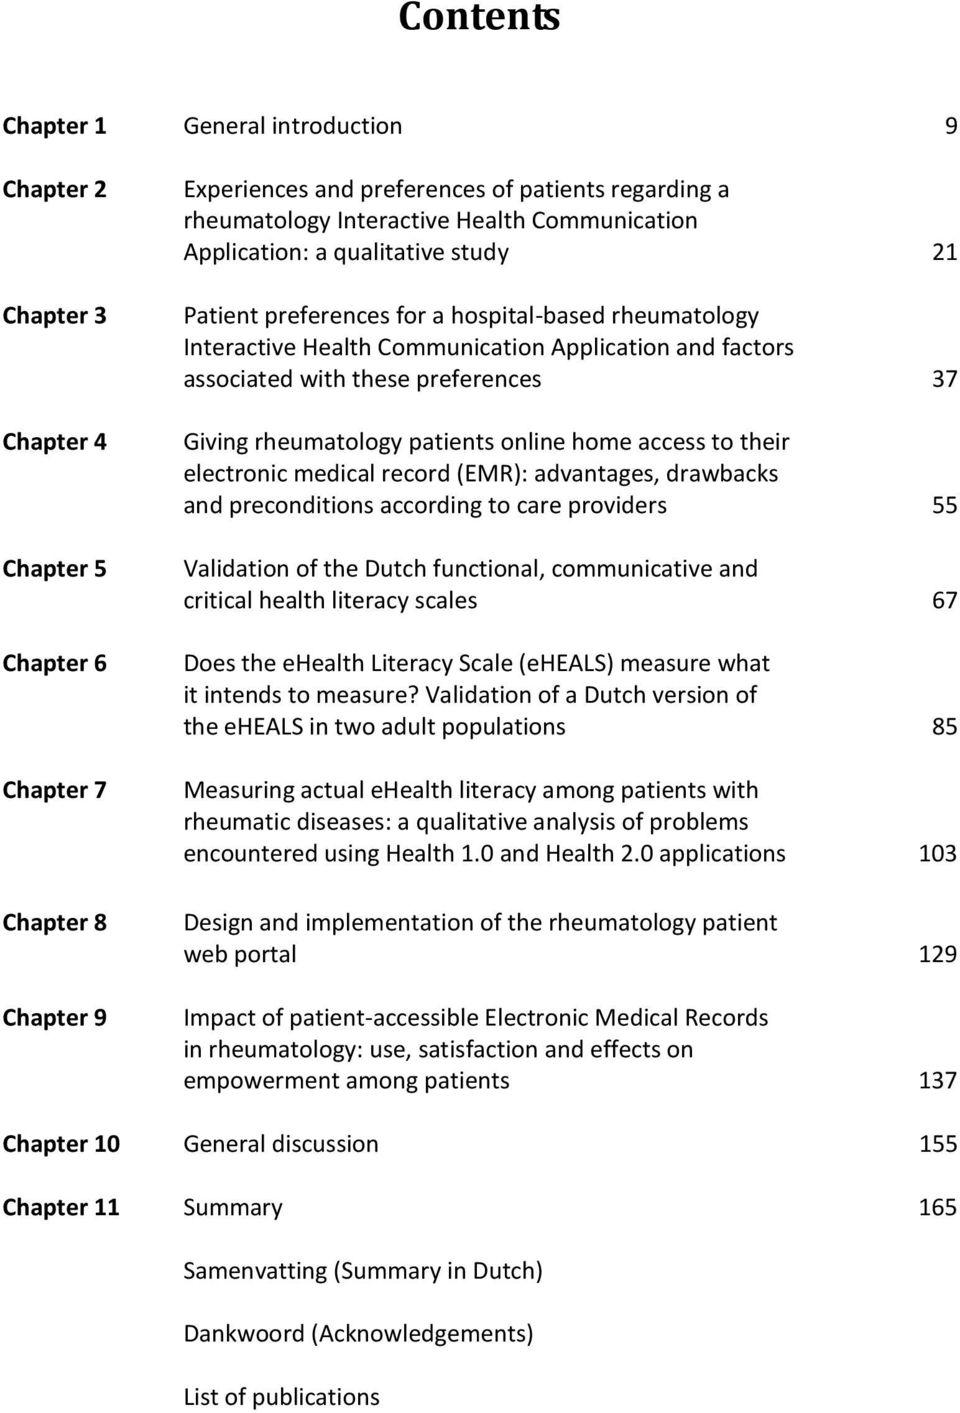 preferences 37 Giving rheumatology patients online home access to their electronic medical record (EMR): advantages, drawbacks and preconditions according to care providers 55 Validation of the Dutch